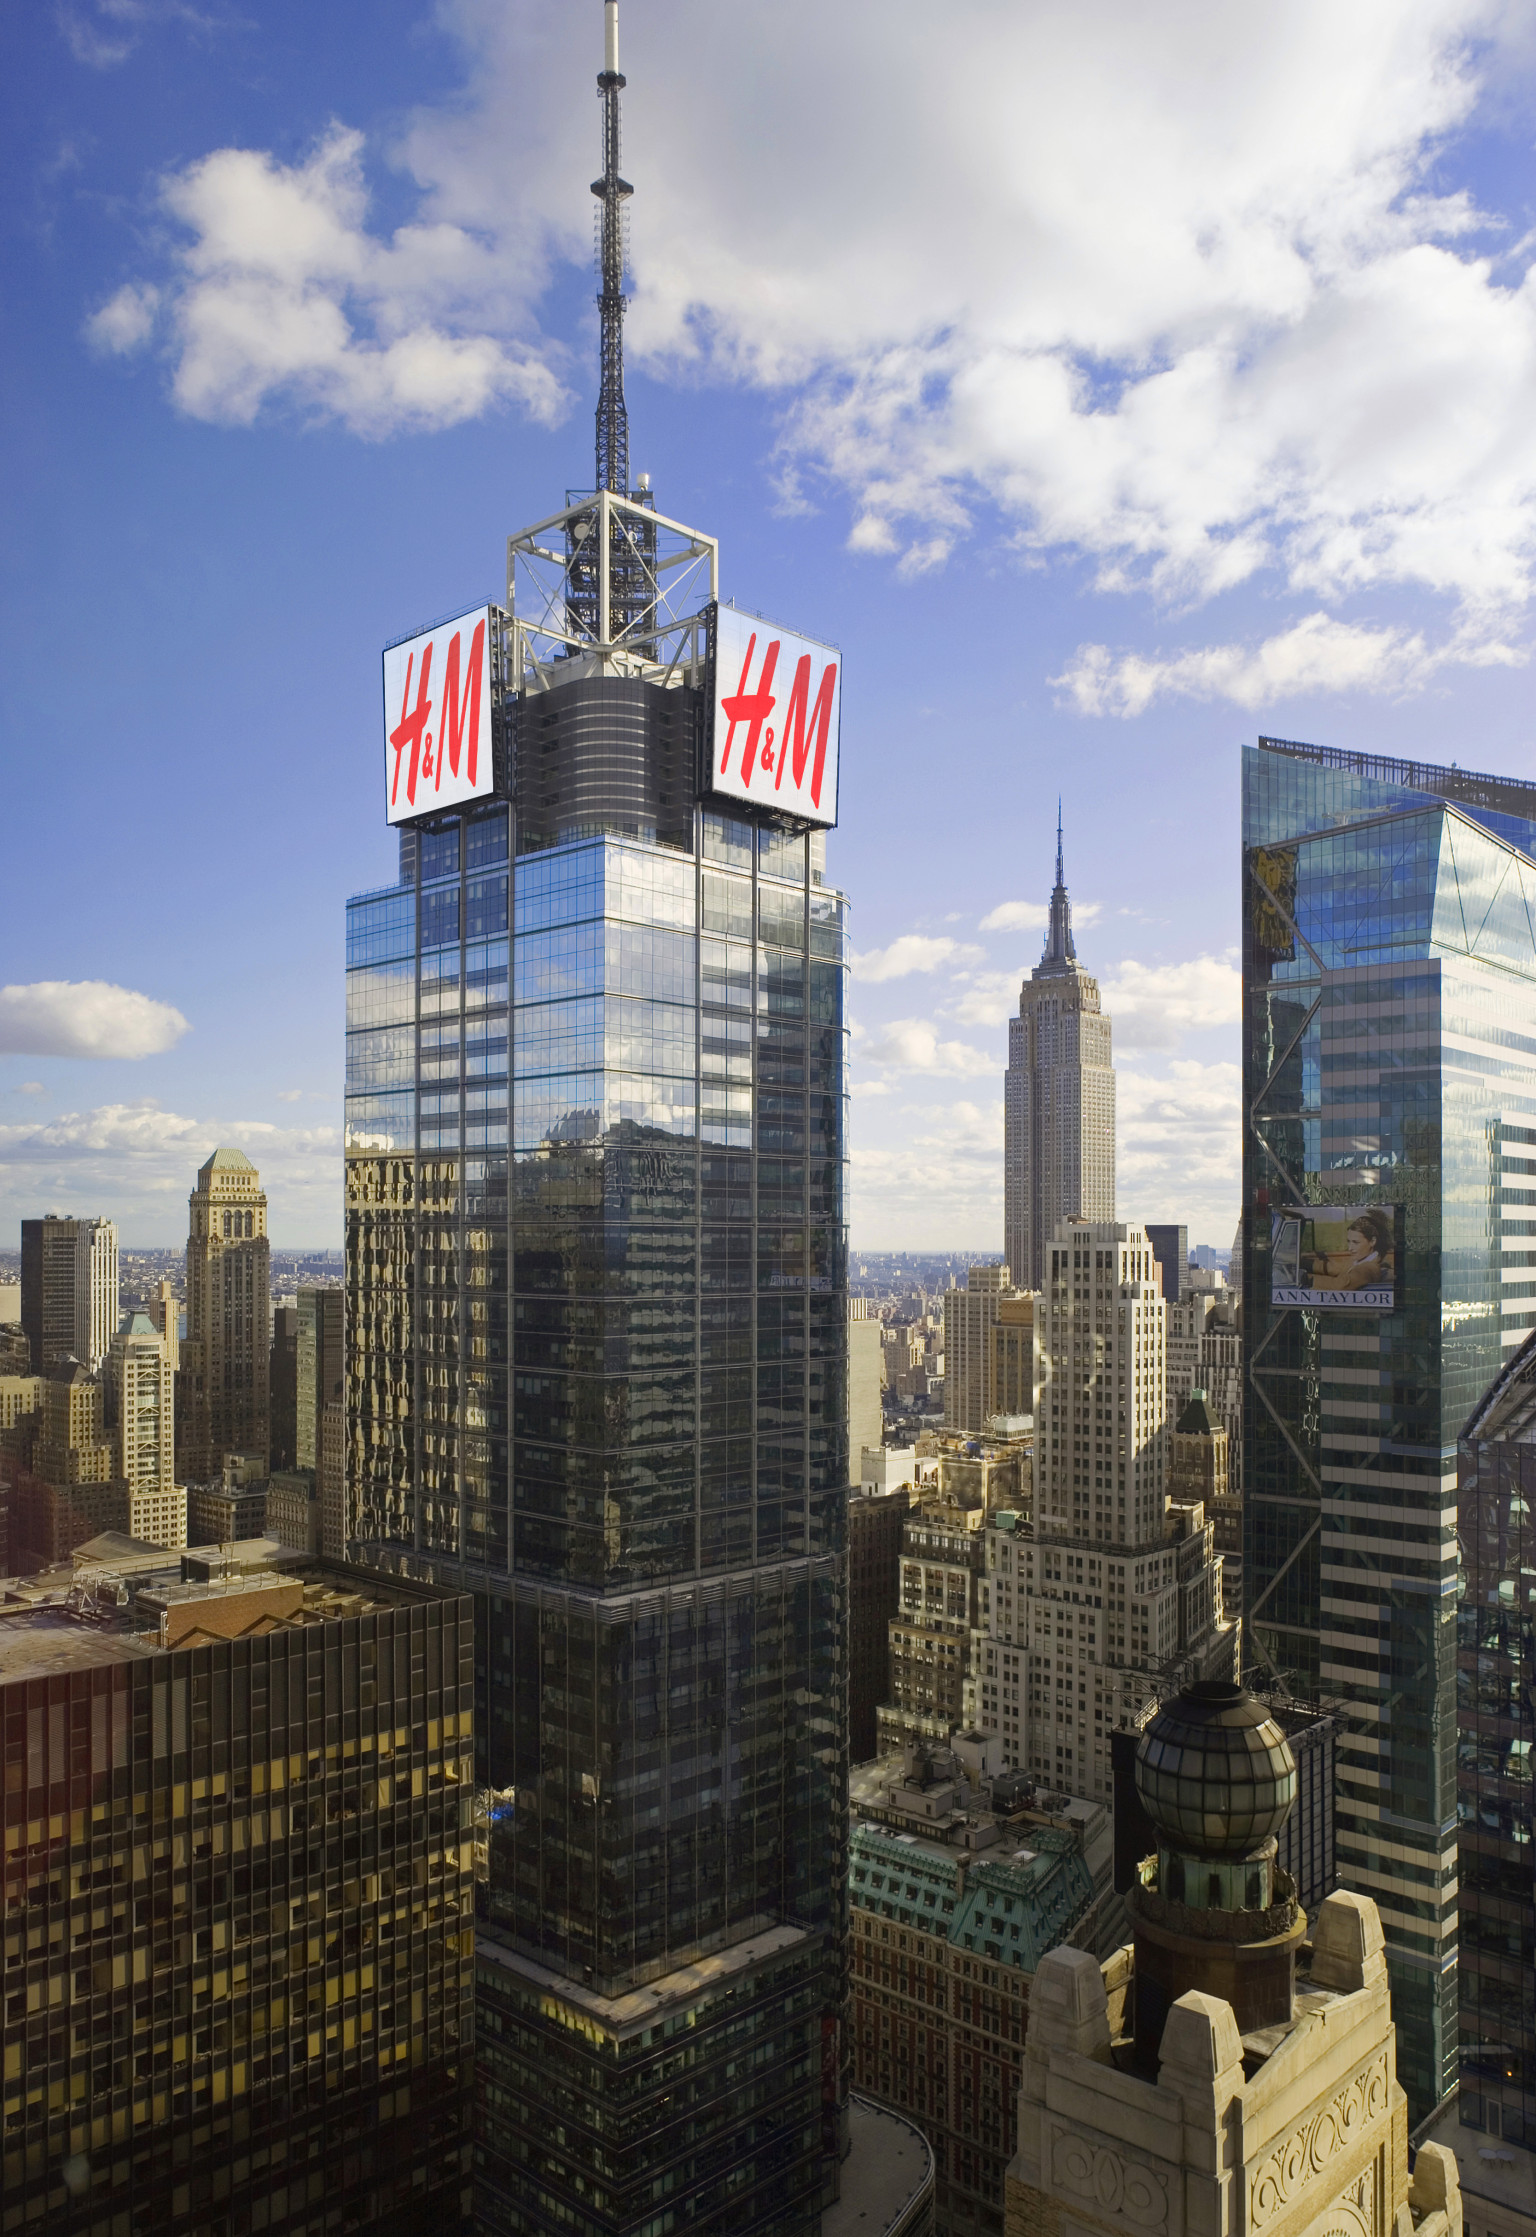 H&M Signs Atop 4 Times Square To Change New York City ...